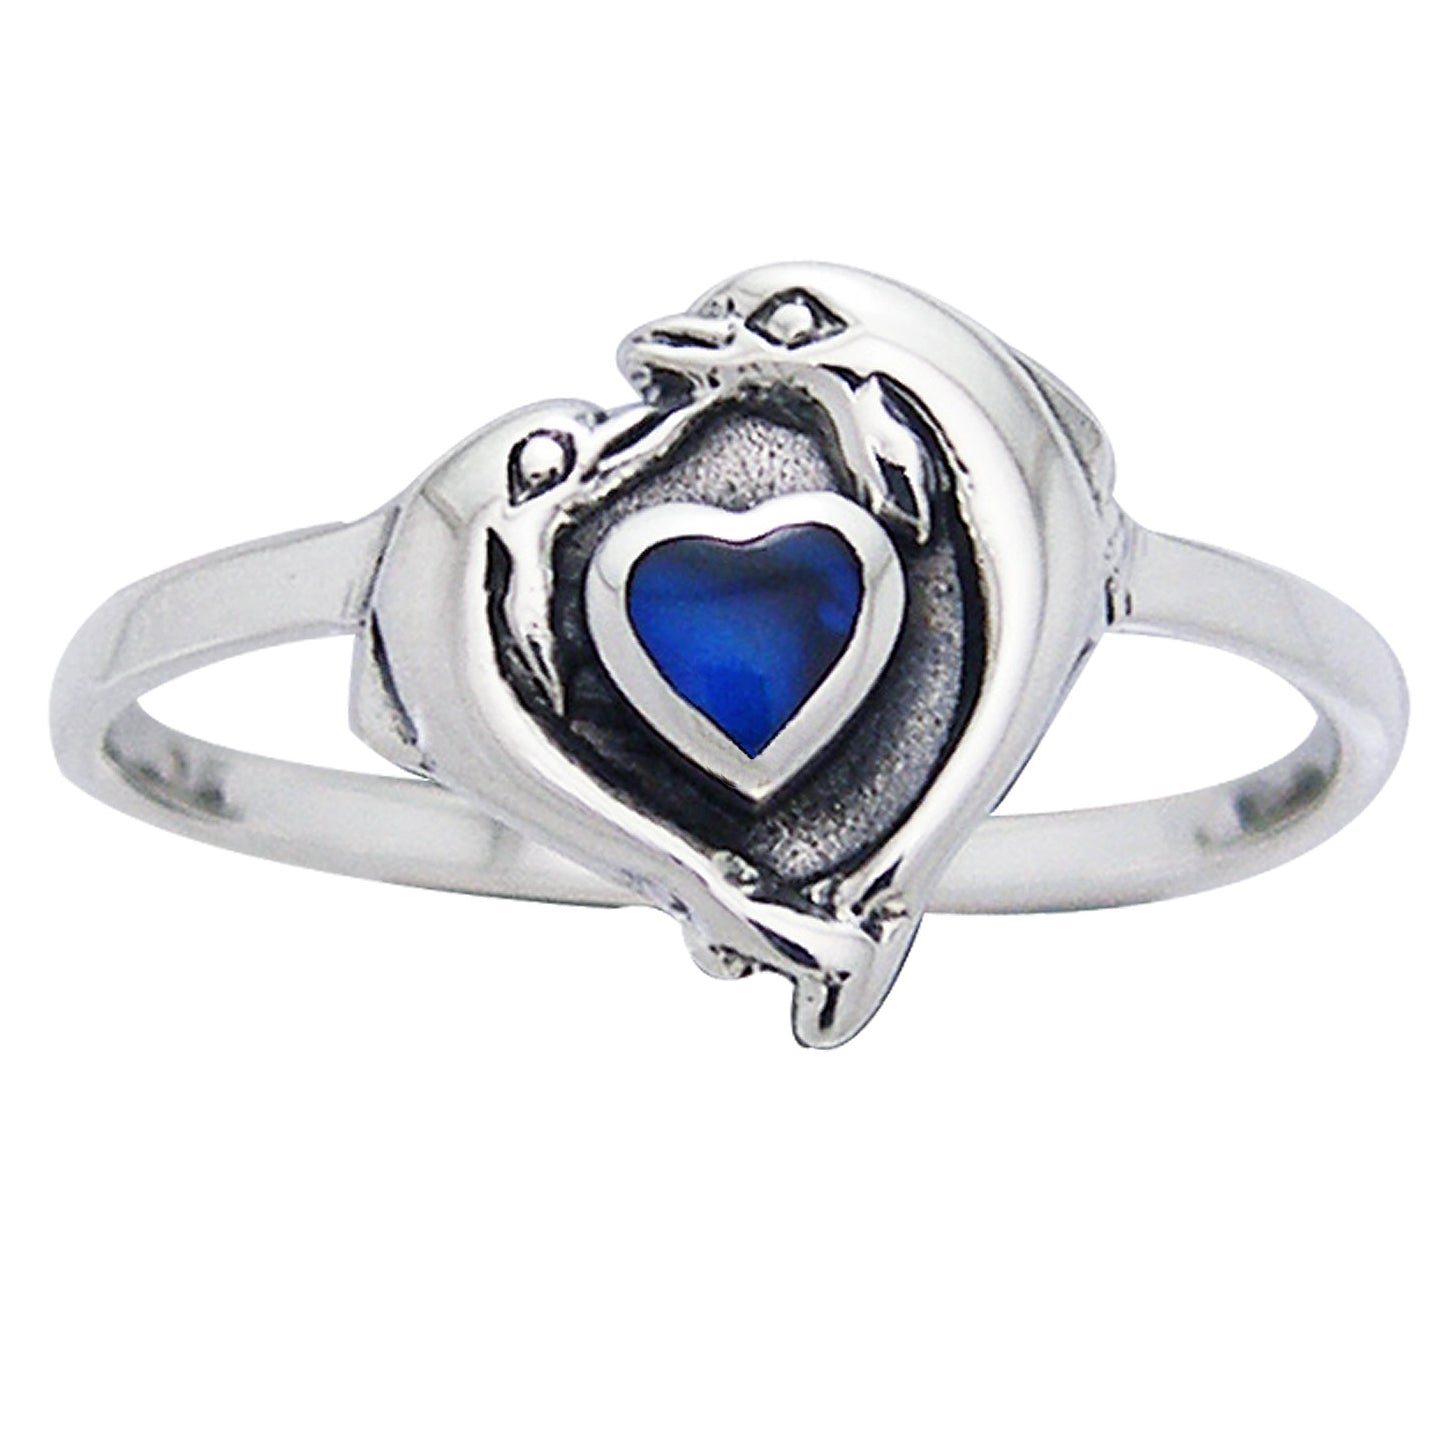 Petite Dolphin Heart Ring Sterling Silver and Paua Shell